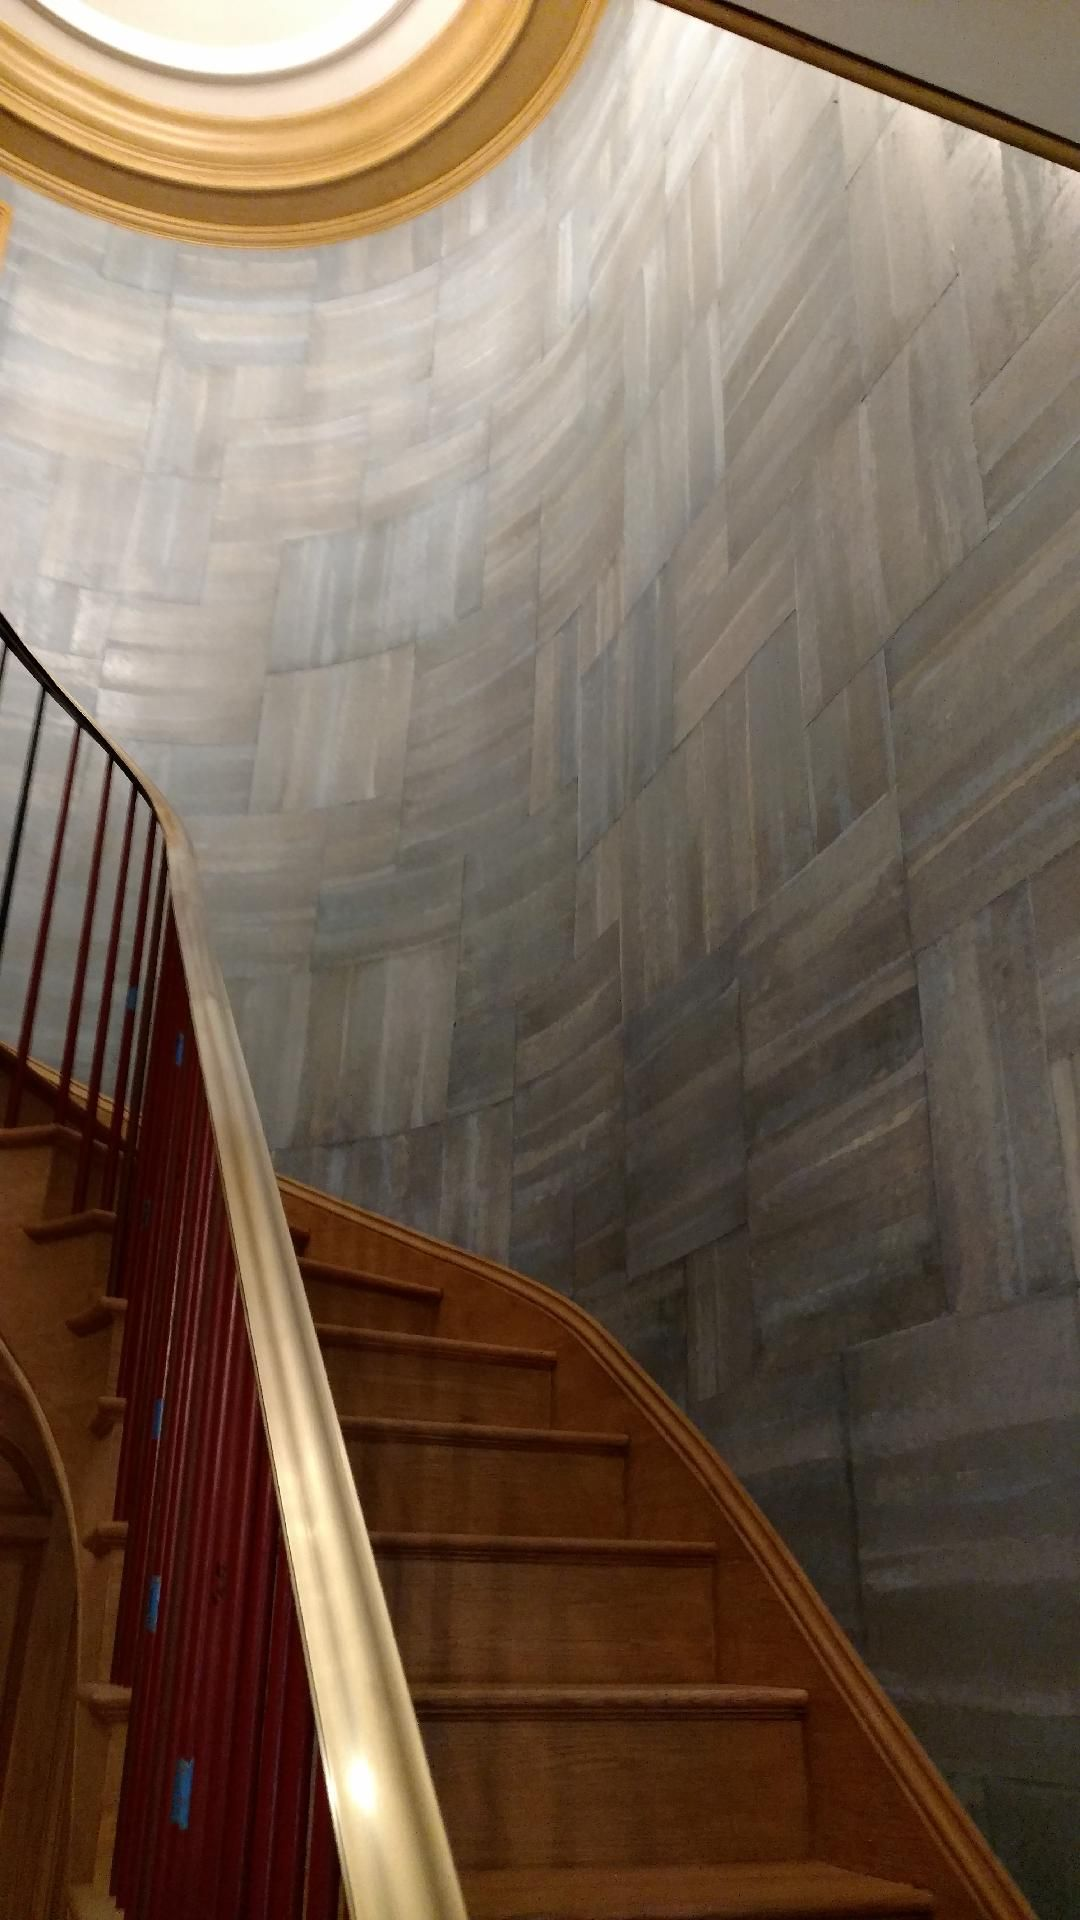 Wallpaper Installation in Staircase Wallpaper staircase